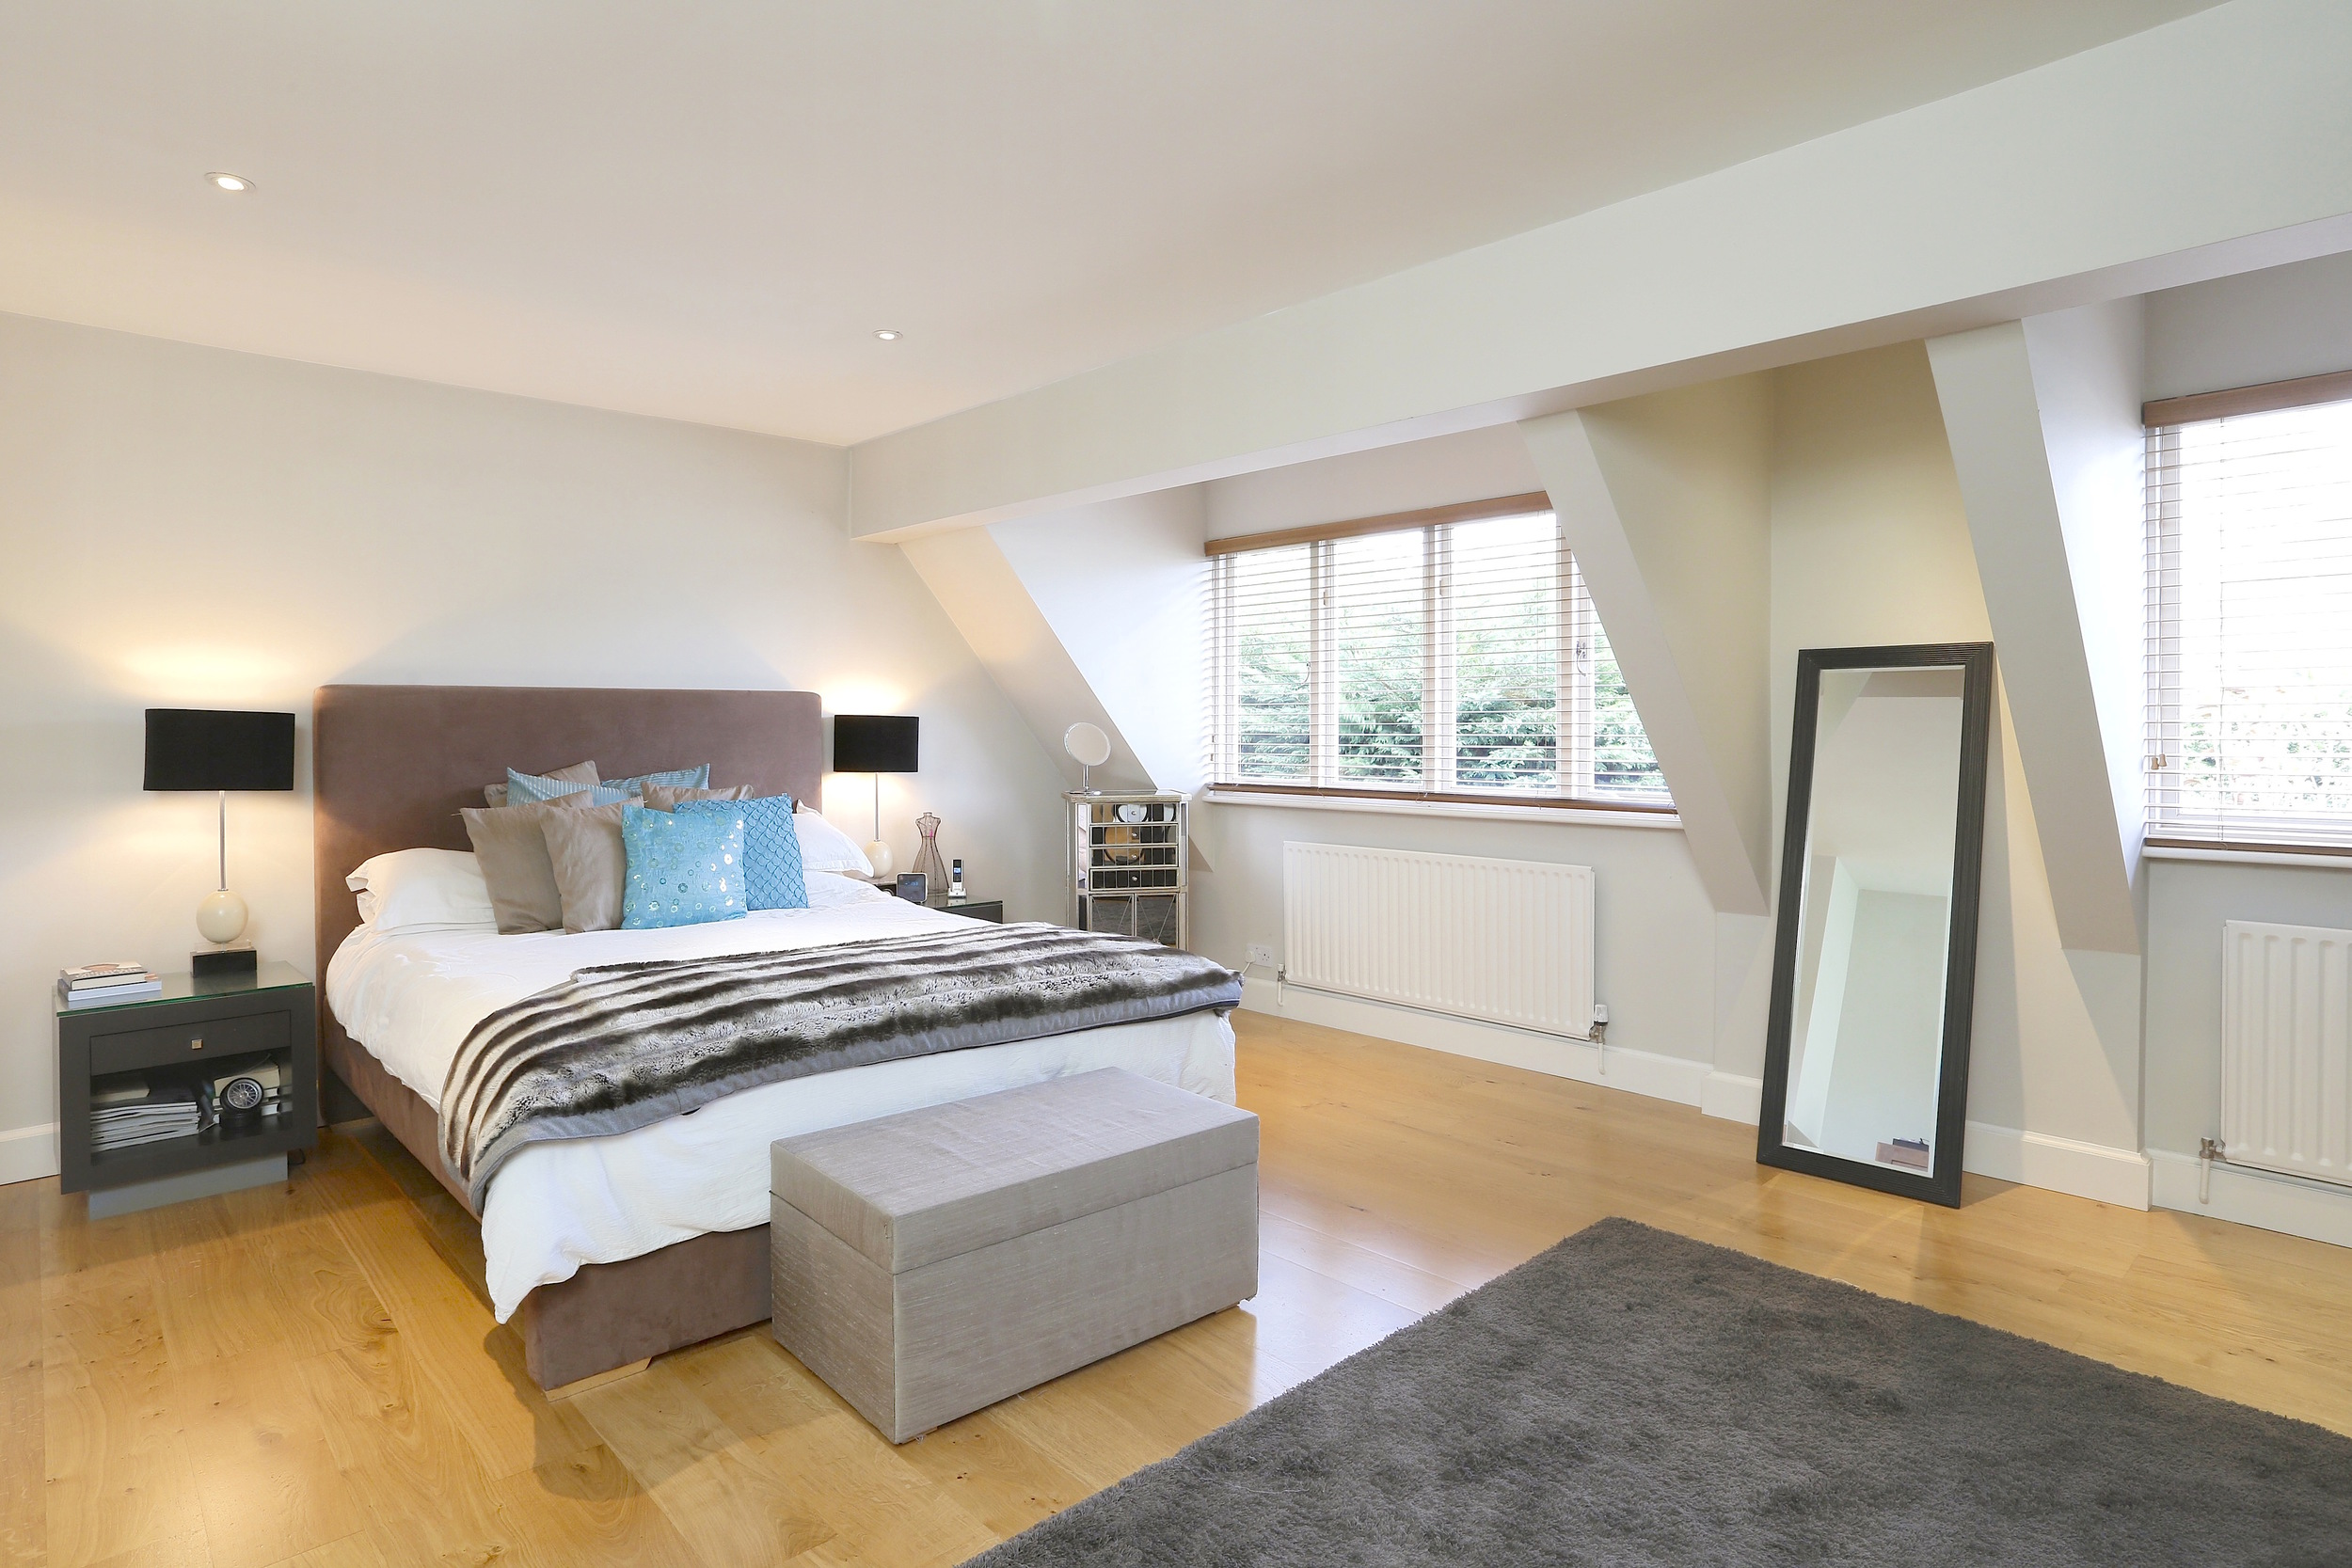 Albion Rd 5 - M Bed.jpg